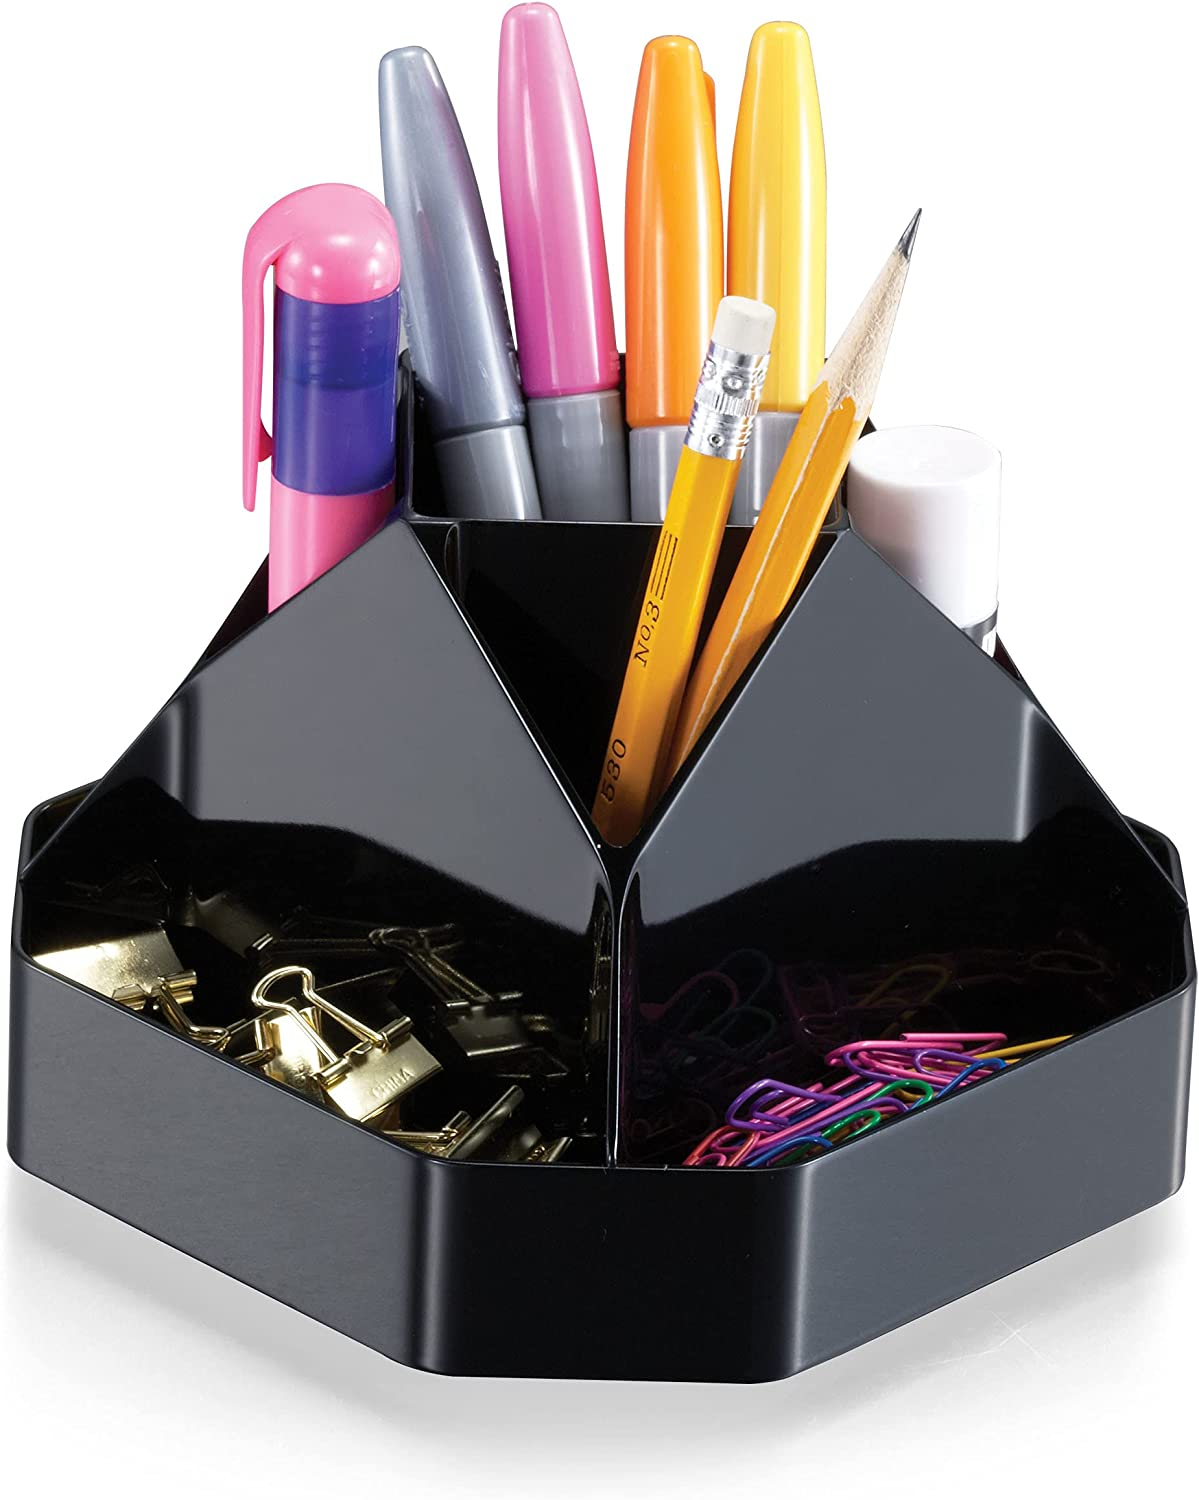 Officemate OIC Recycled Compact Sale Rotary Organizer 9 Compartments Max 72% OFF